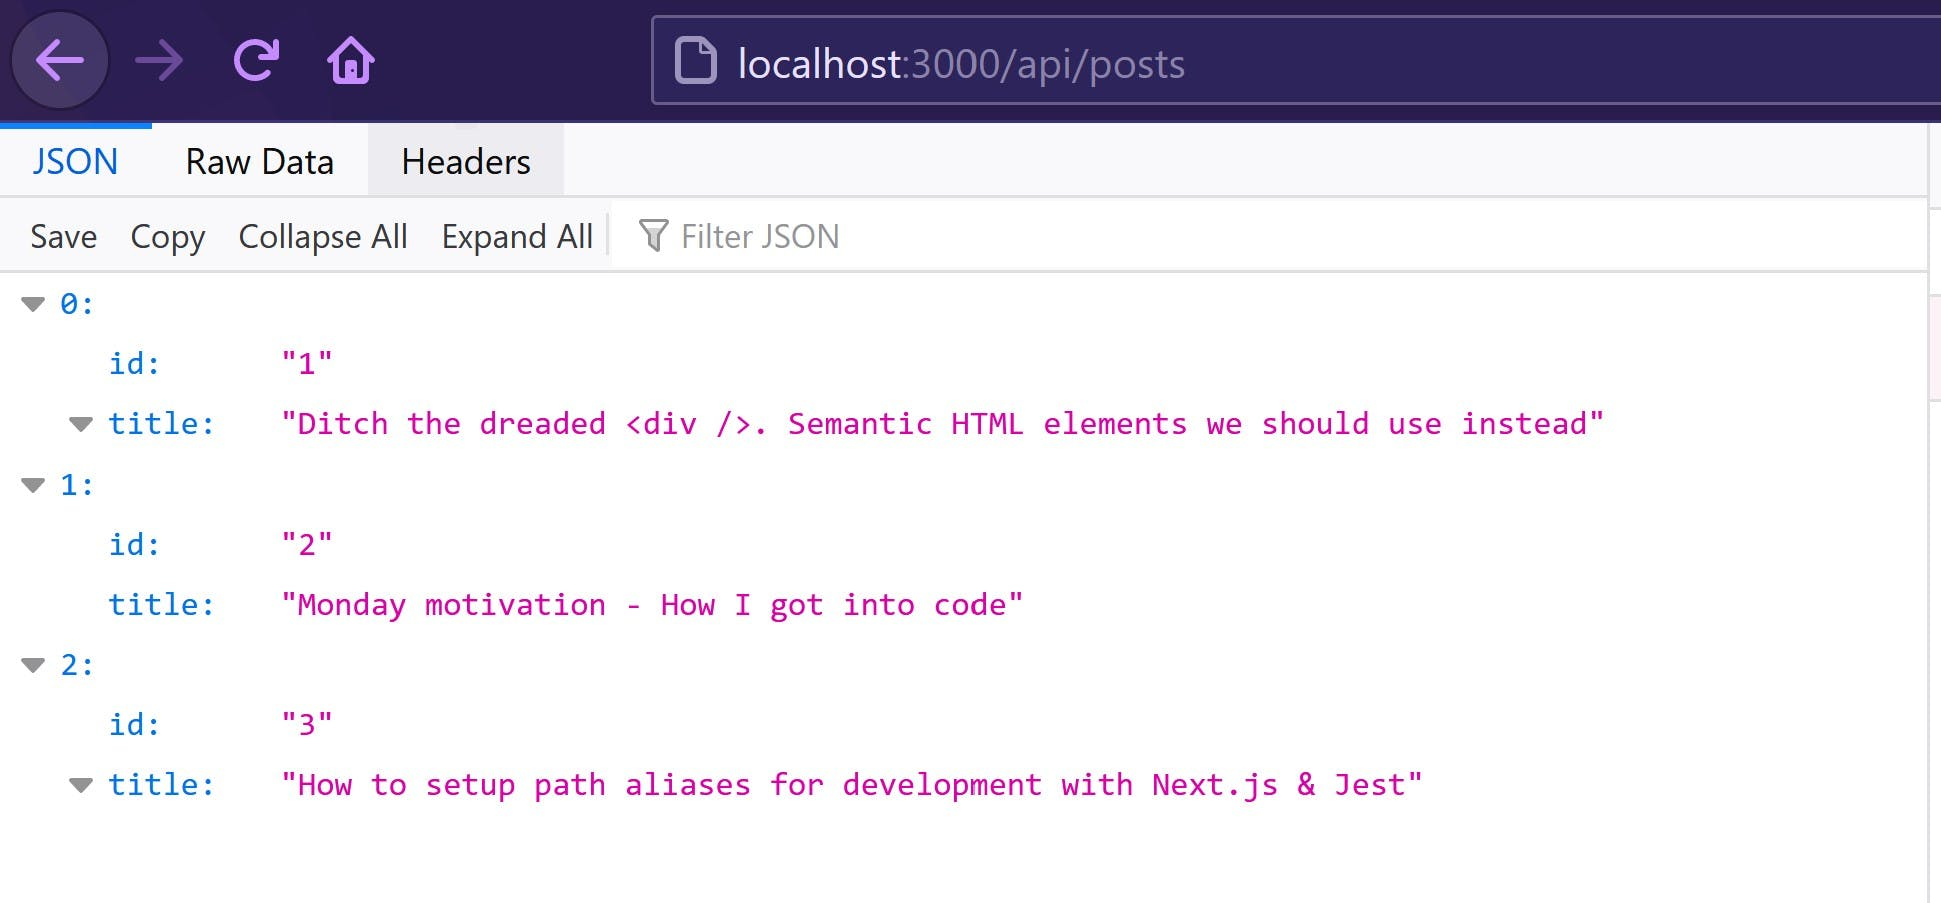 JSON response of our hardcode posts